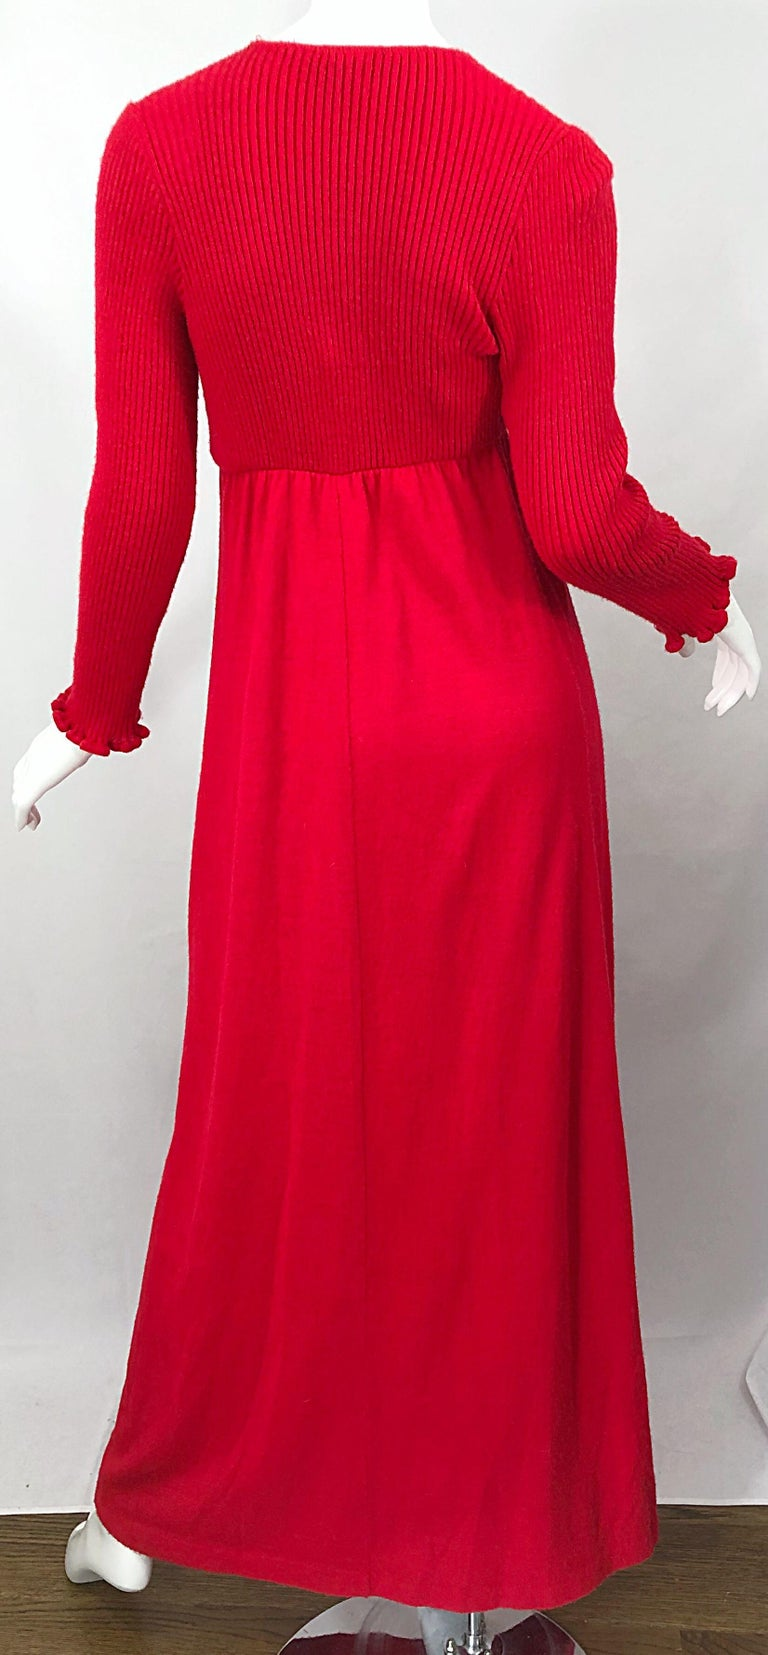 Vintage Joseph Magnin 1970s Lipstick Red Long Sleeve Wool 70s Sweater Maxi Dress For Sale 6